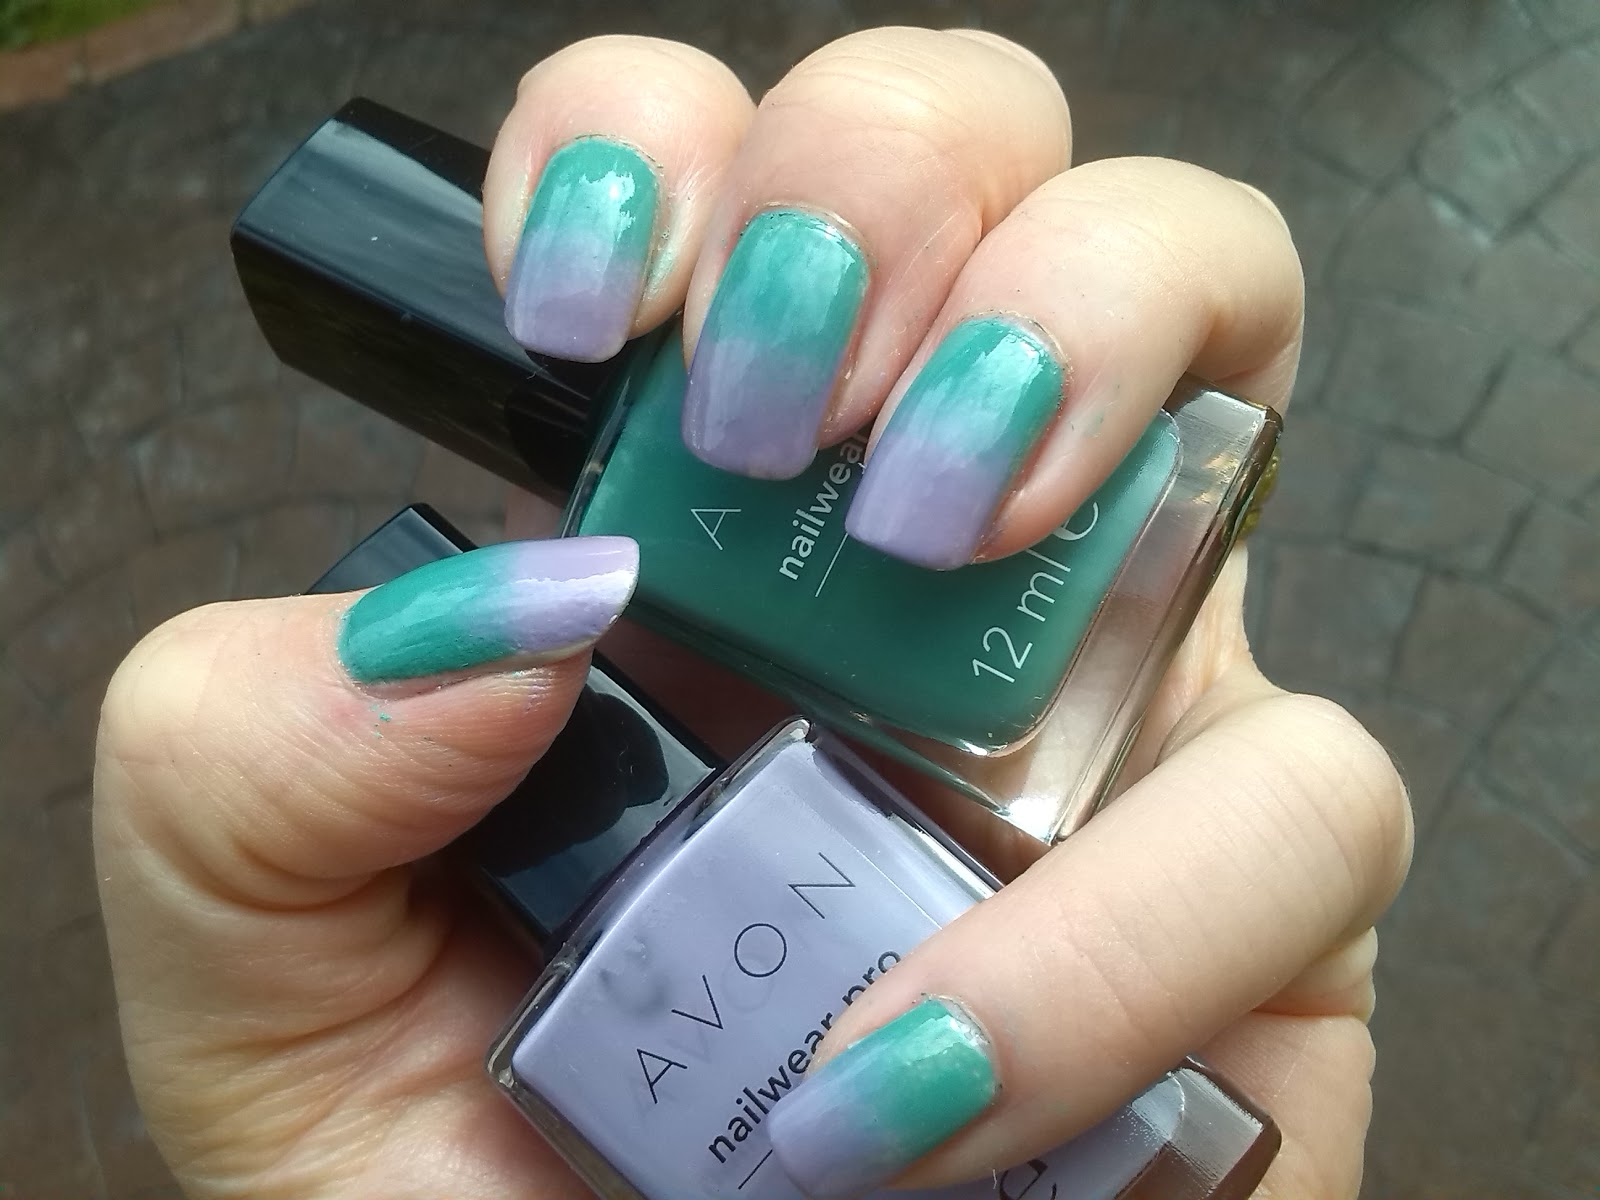 Gradient with Avon Peppermint and Avon Luxe Lavender